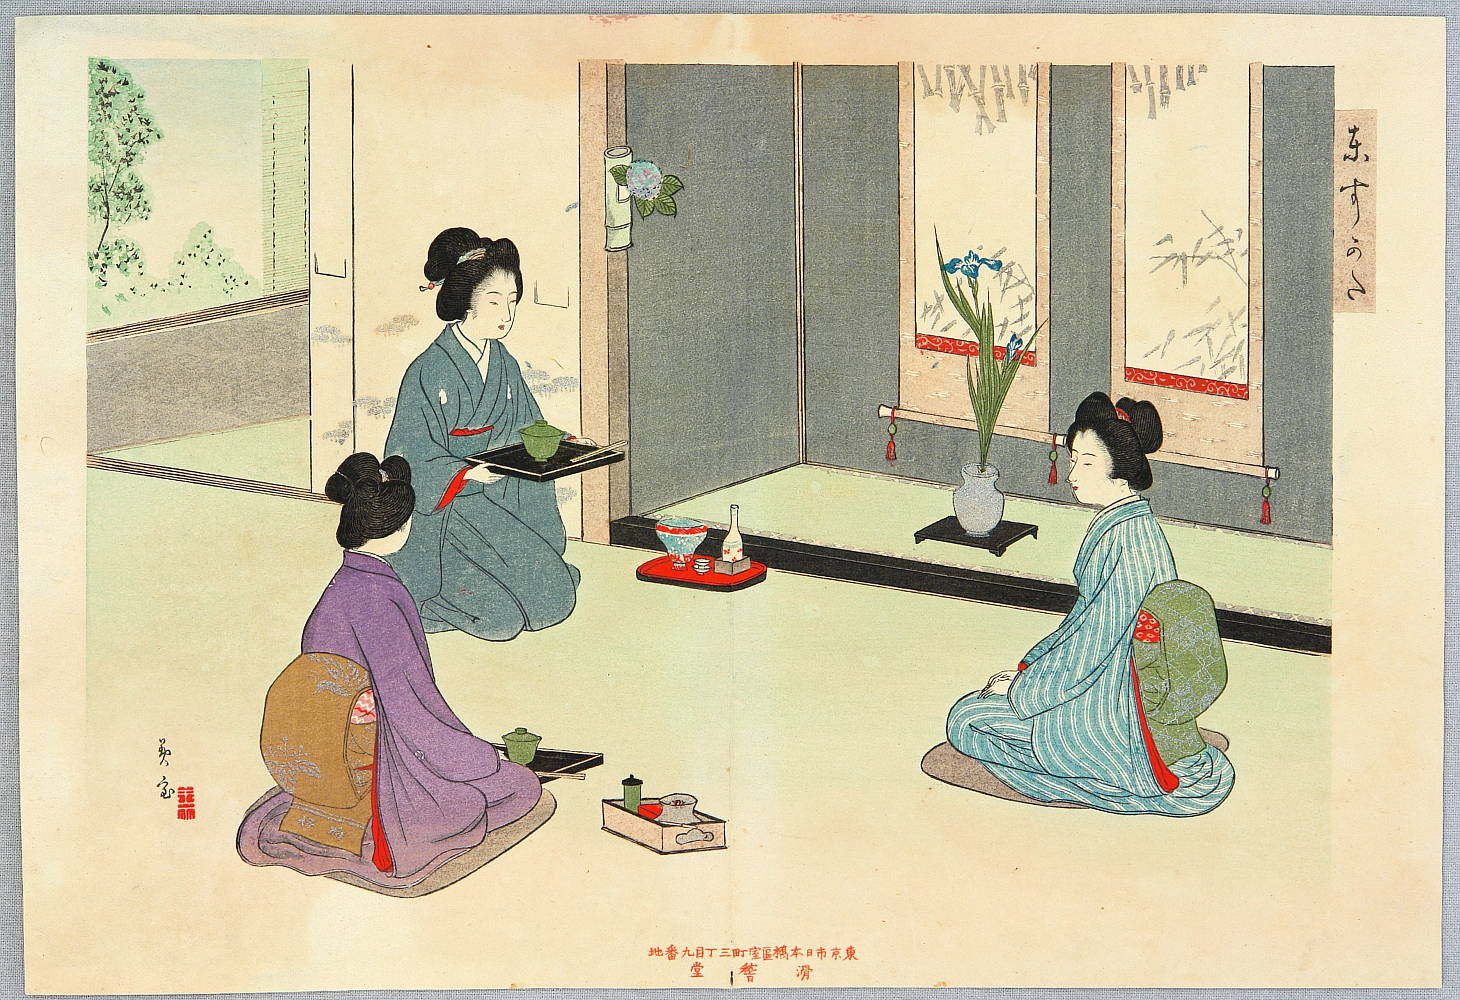 tea in japan essays on the history of chanoyu History of tea in japan and the japanese tea ceremony essay examples - according to brown, tea is classified among the most significant non-alcoholic beverage across the globe it has gained fame as a result of its benefits.